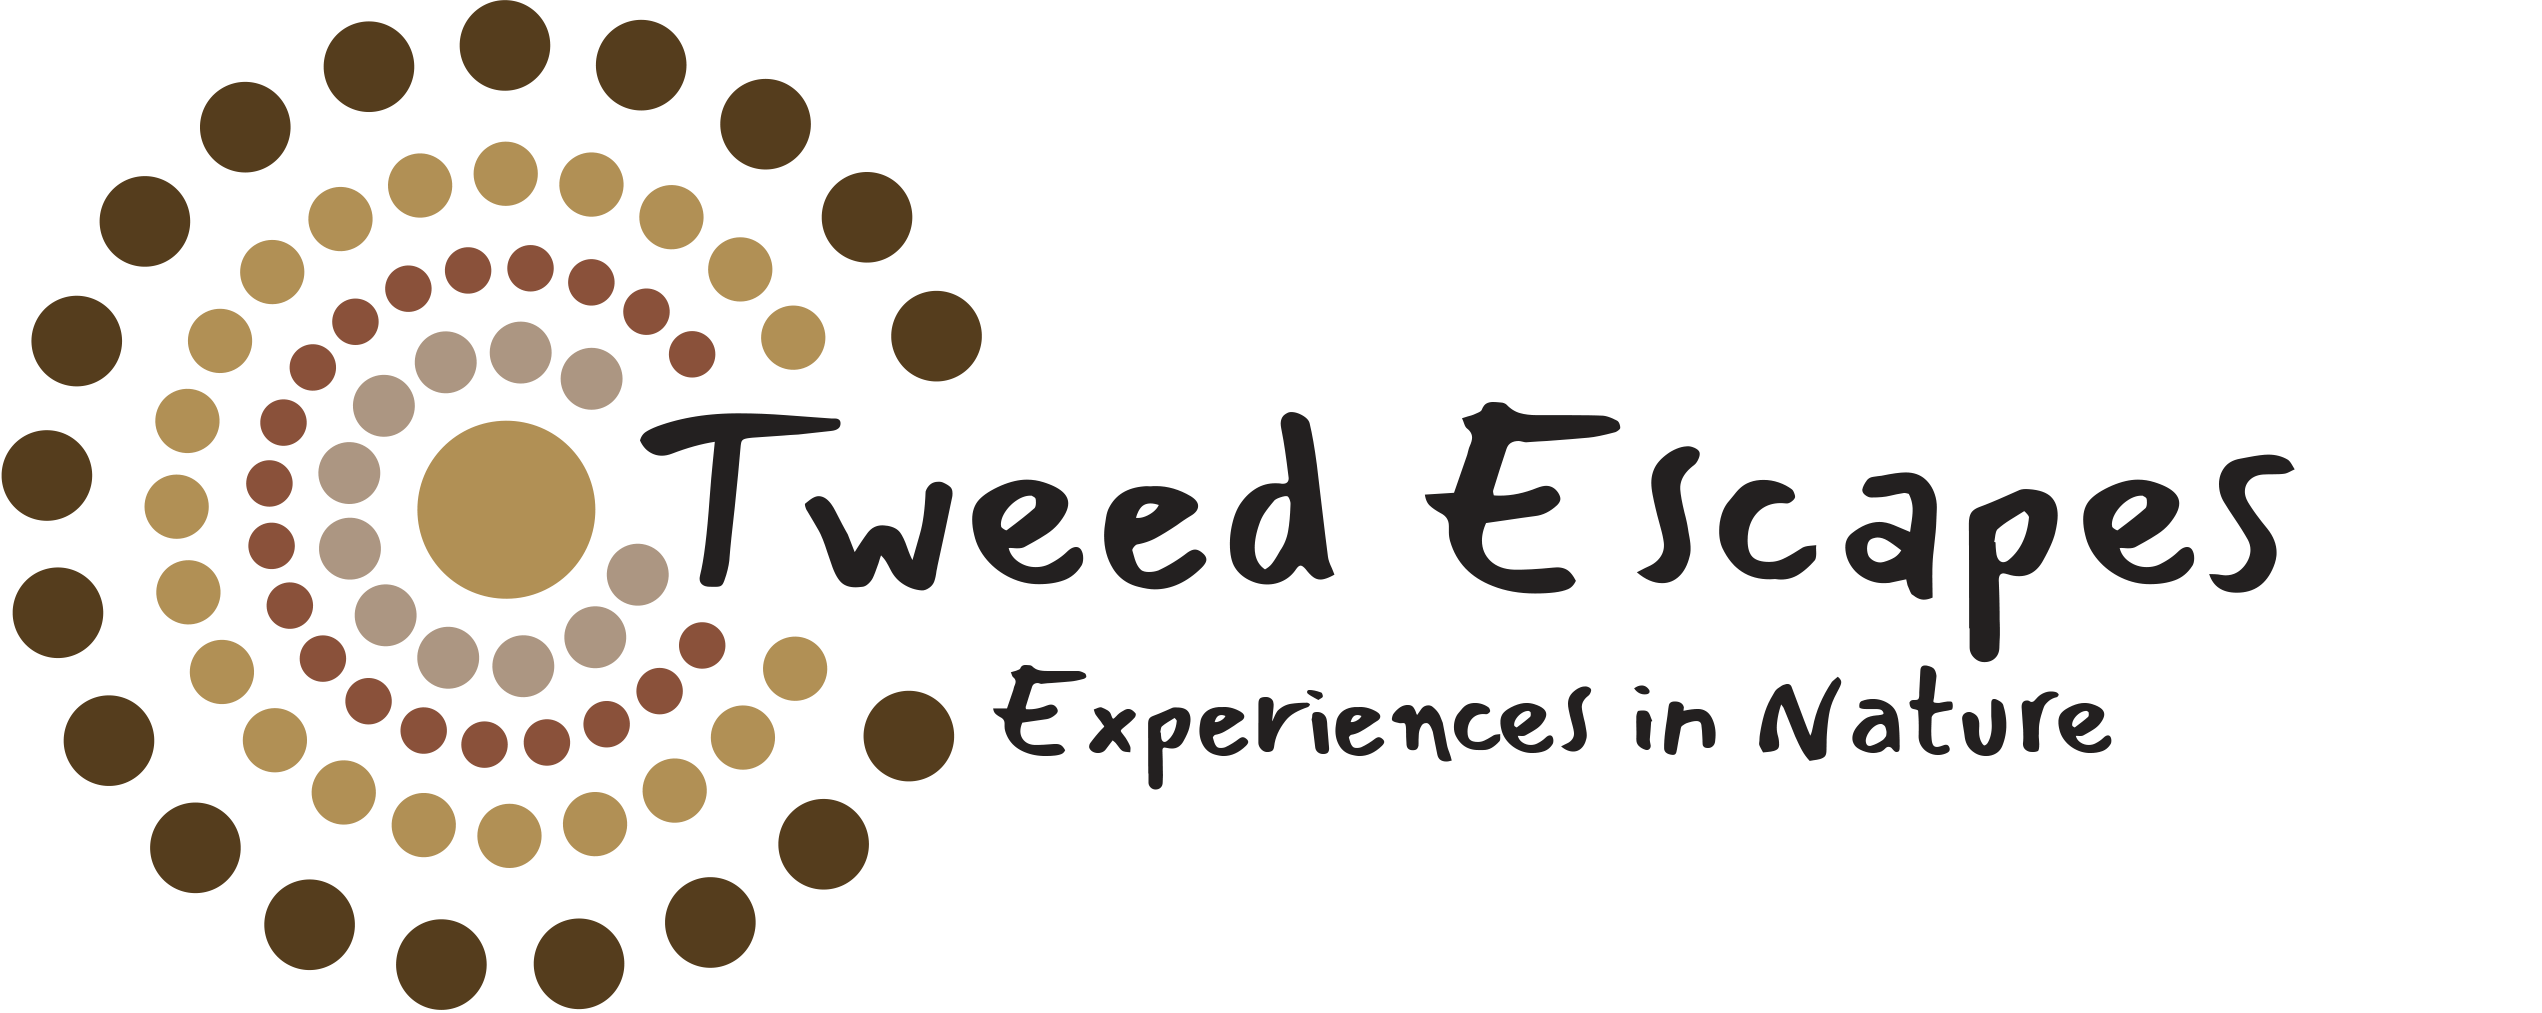 Tweed Escapes - Experiences in Nature